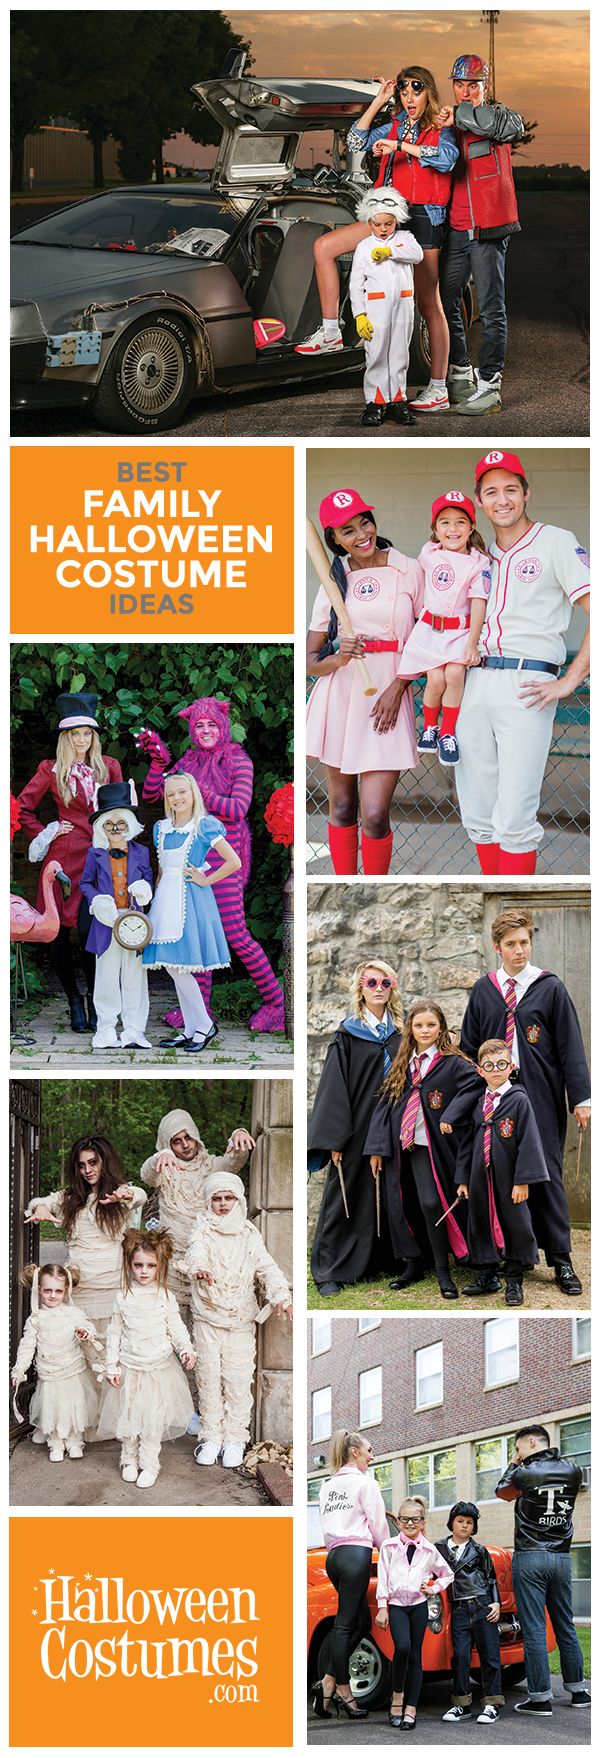 Exclusive online deals for adult and kids costumes.  The biggest and best costume selection online!